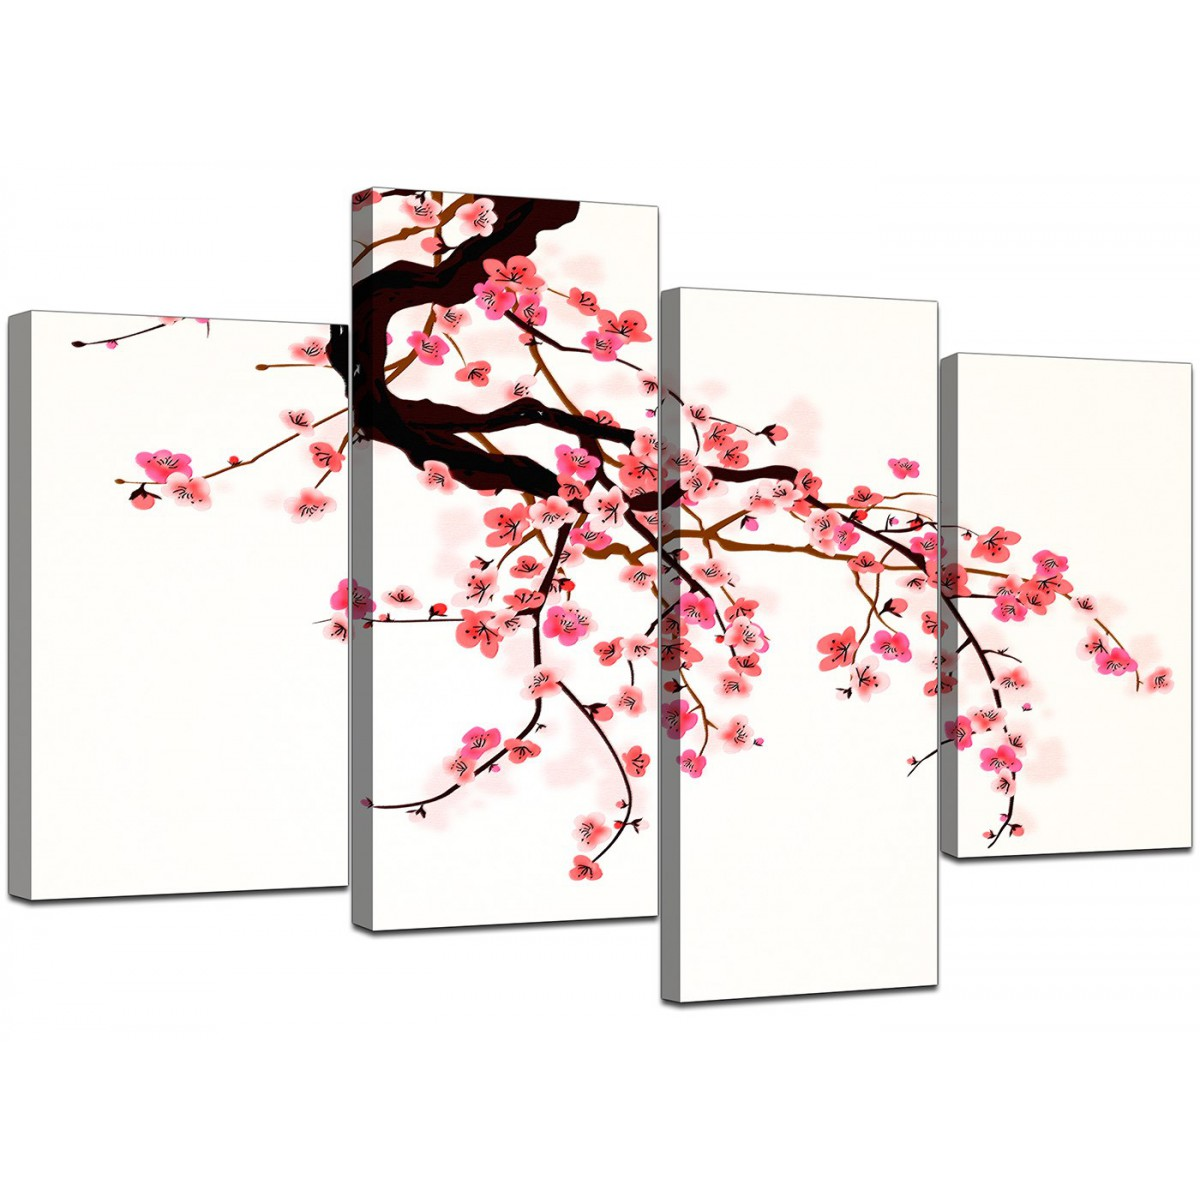 3 Piece Purple Cherry Blossom Muti Panel Abstract Modern: Canvas Prints UK Of Cherry Blossom For Your Living Room